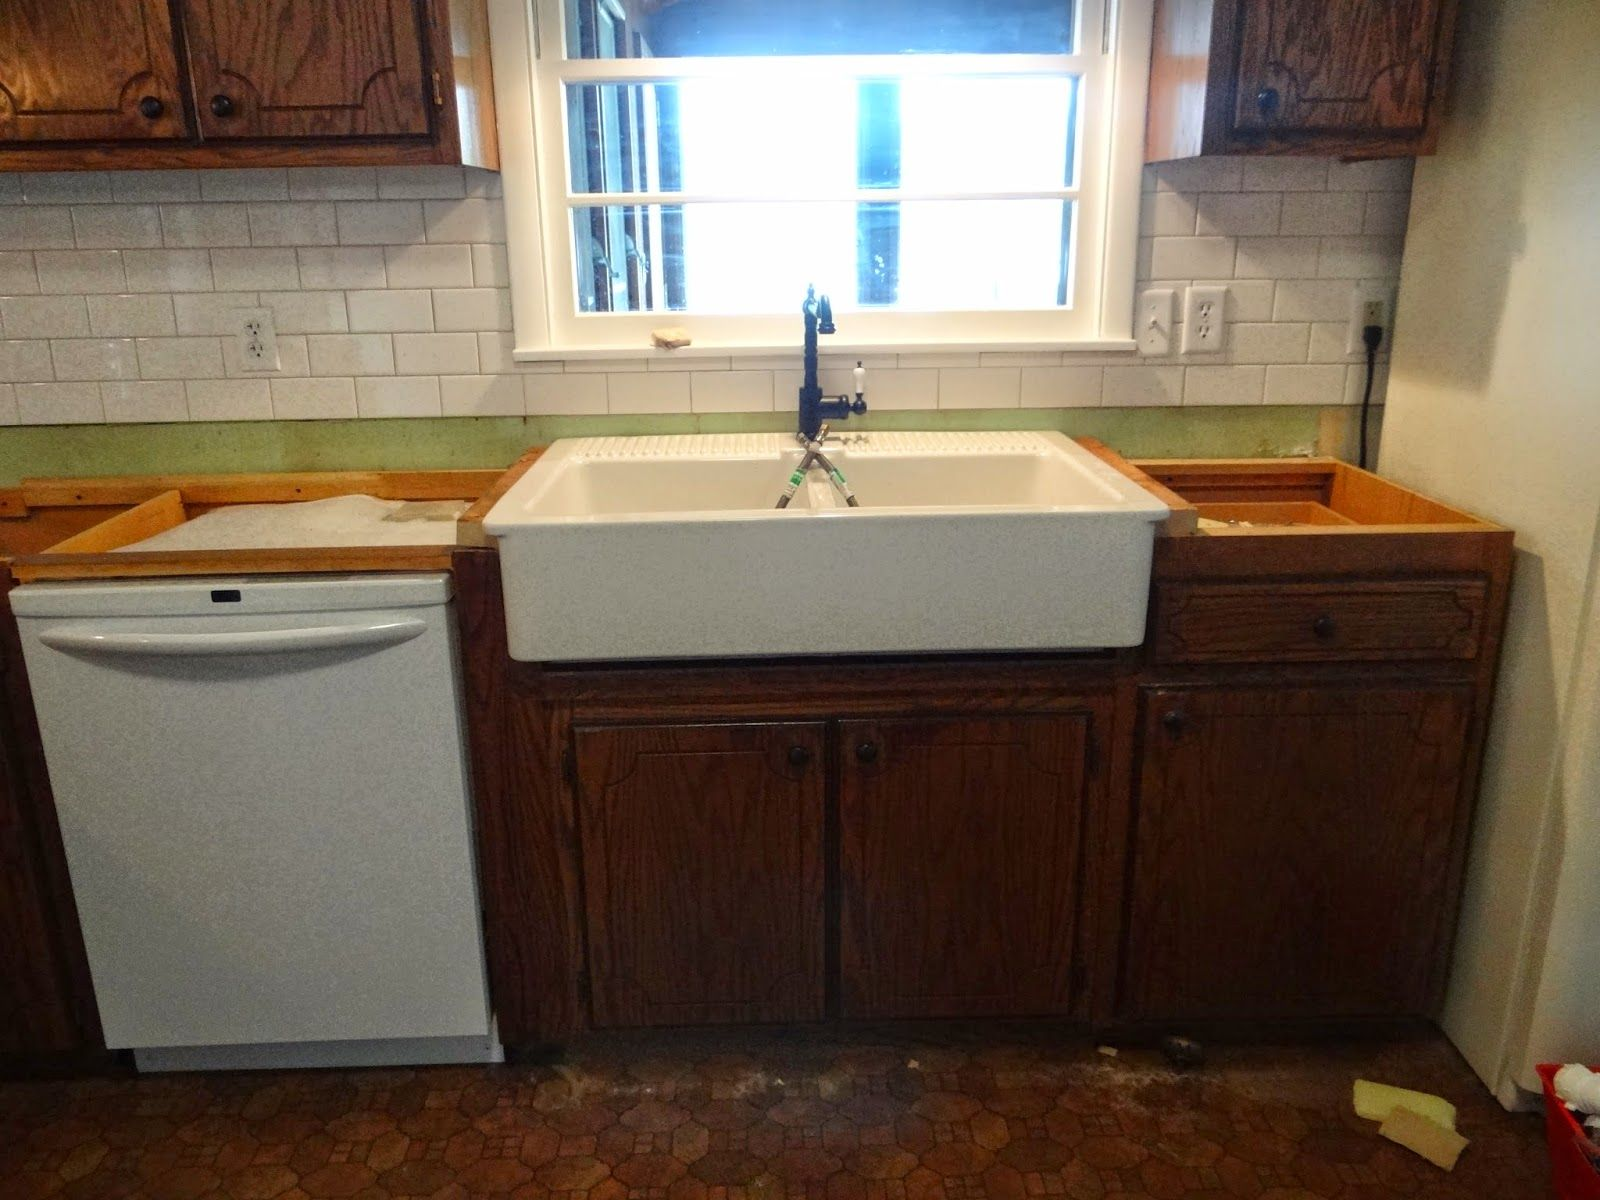 How To Install Ikea Countertops One Project At A Time Diy Blog Installing An Ikea